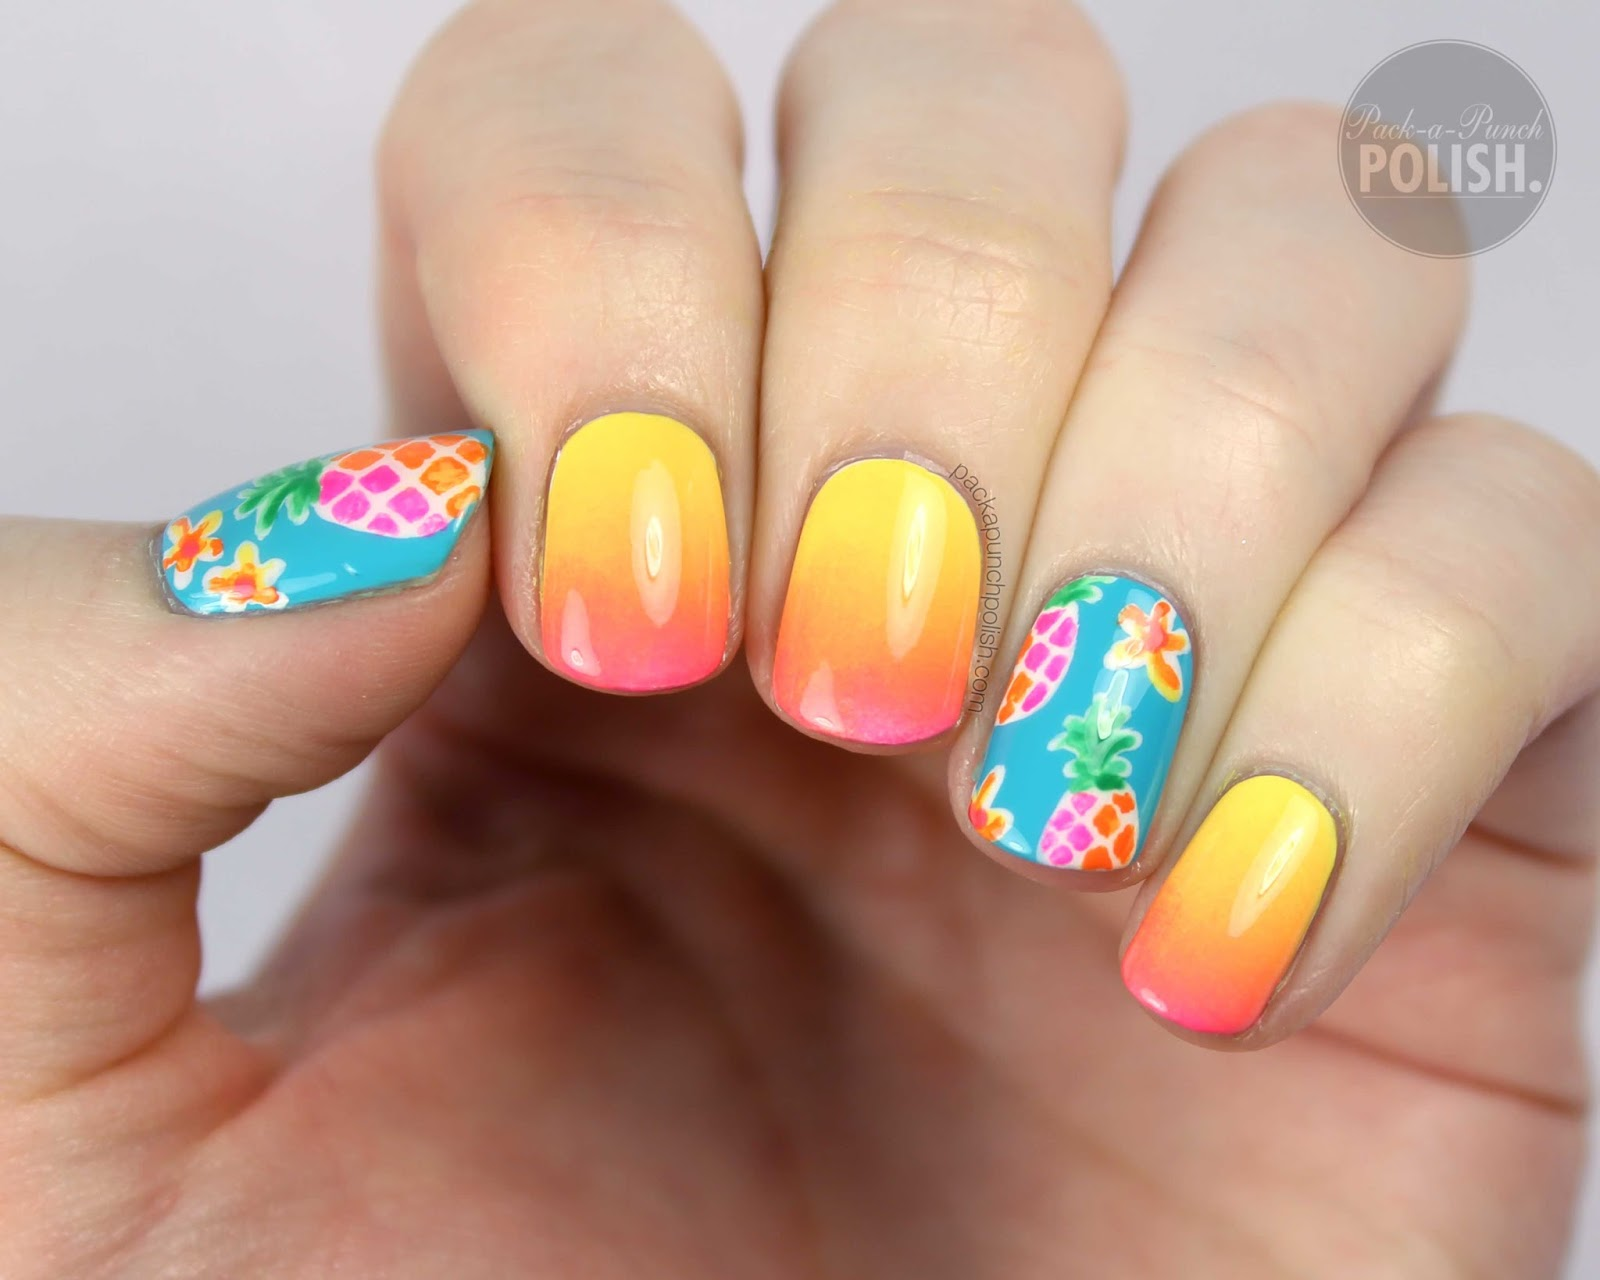 Packapunchpolish pineapple and ombre nail art with video tutorial pineapple and ombre nail art with video tutorial prinsesfo Image collections